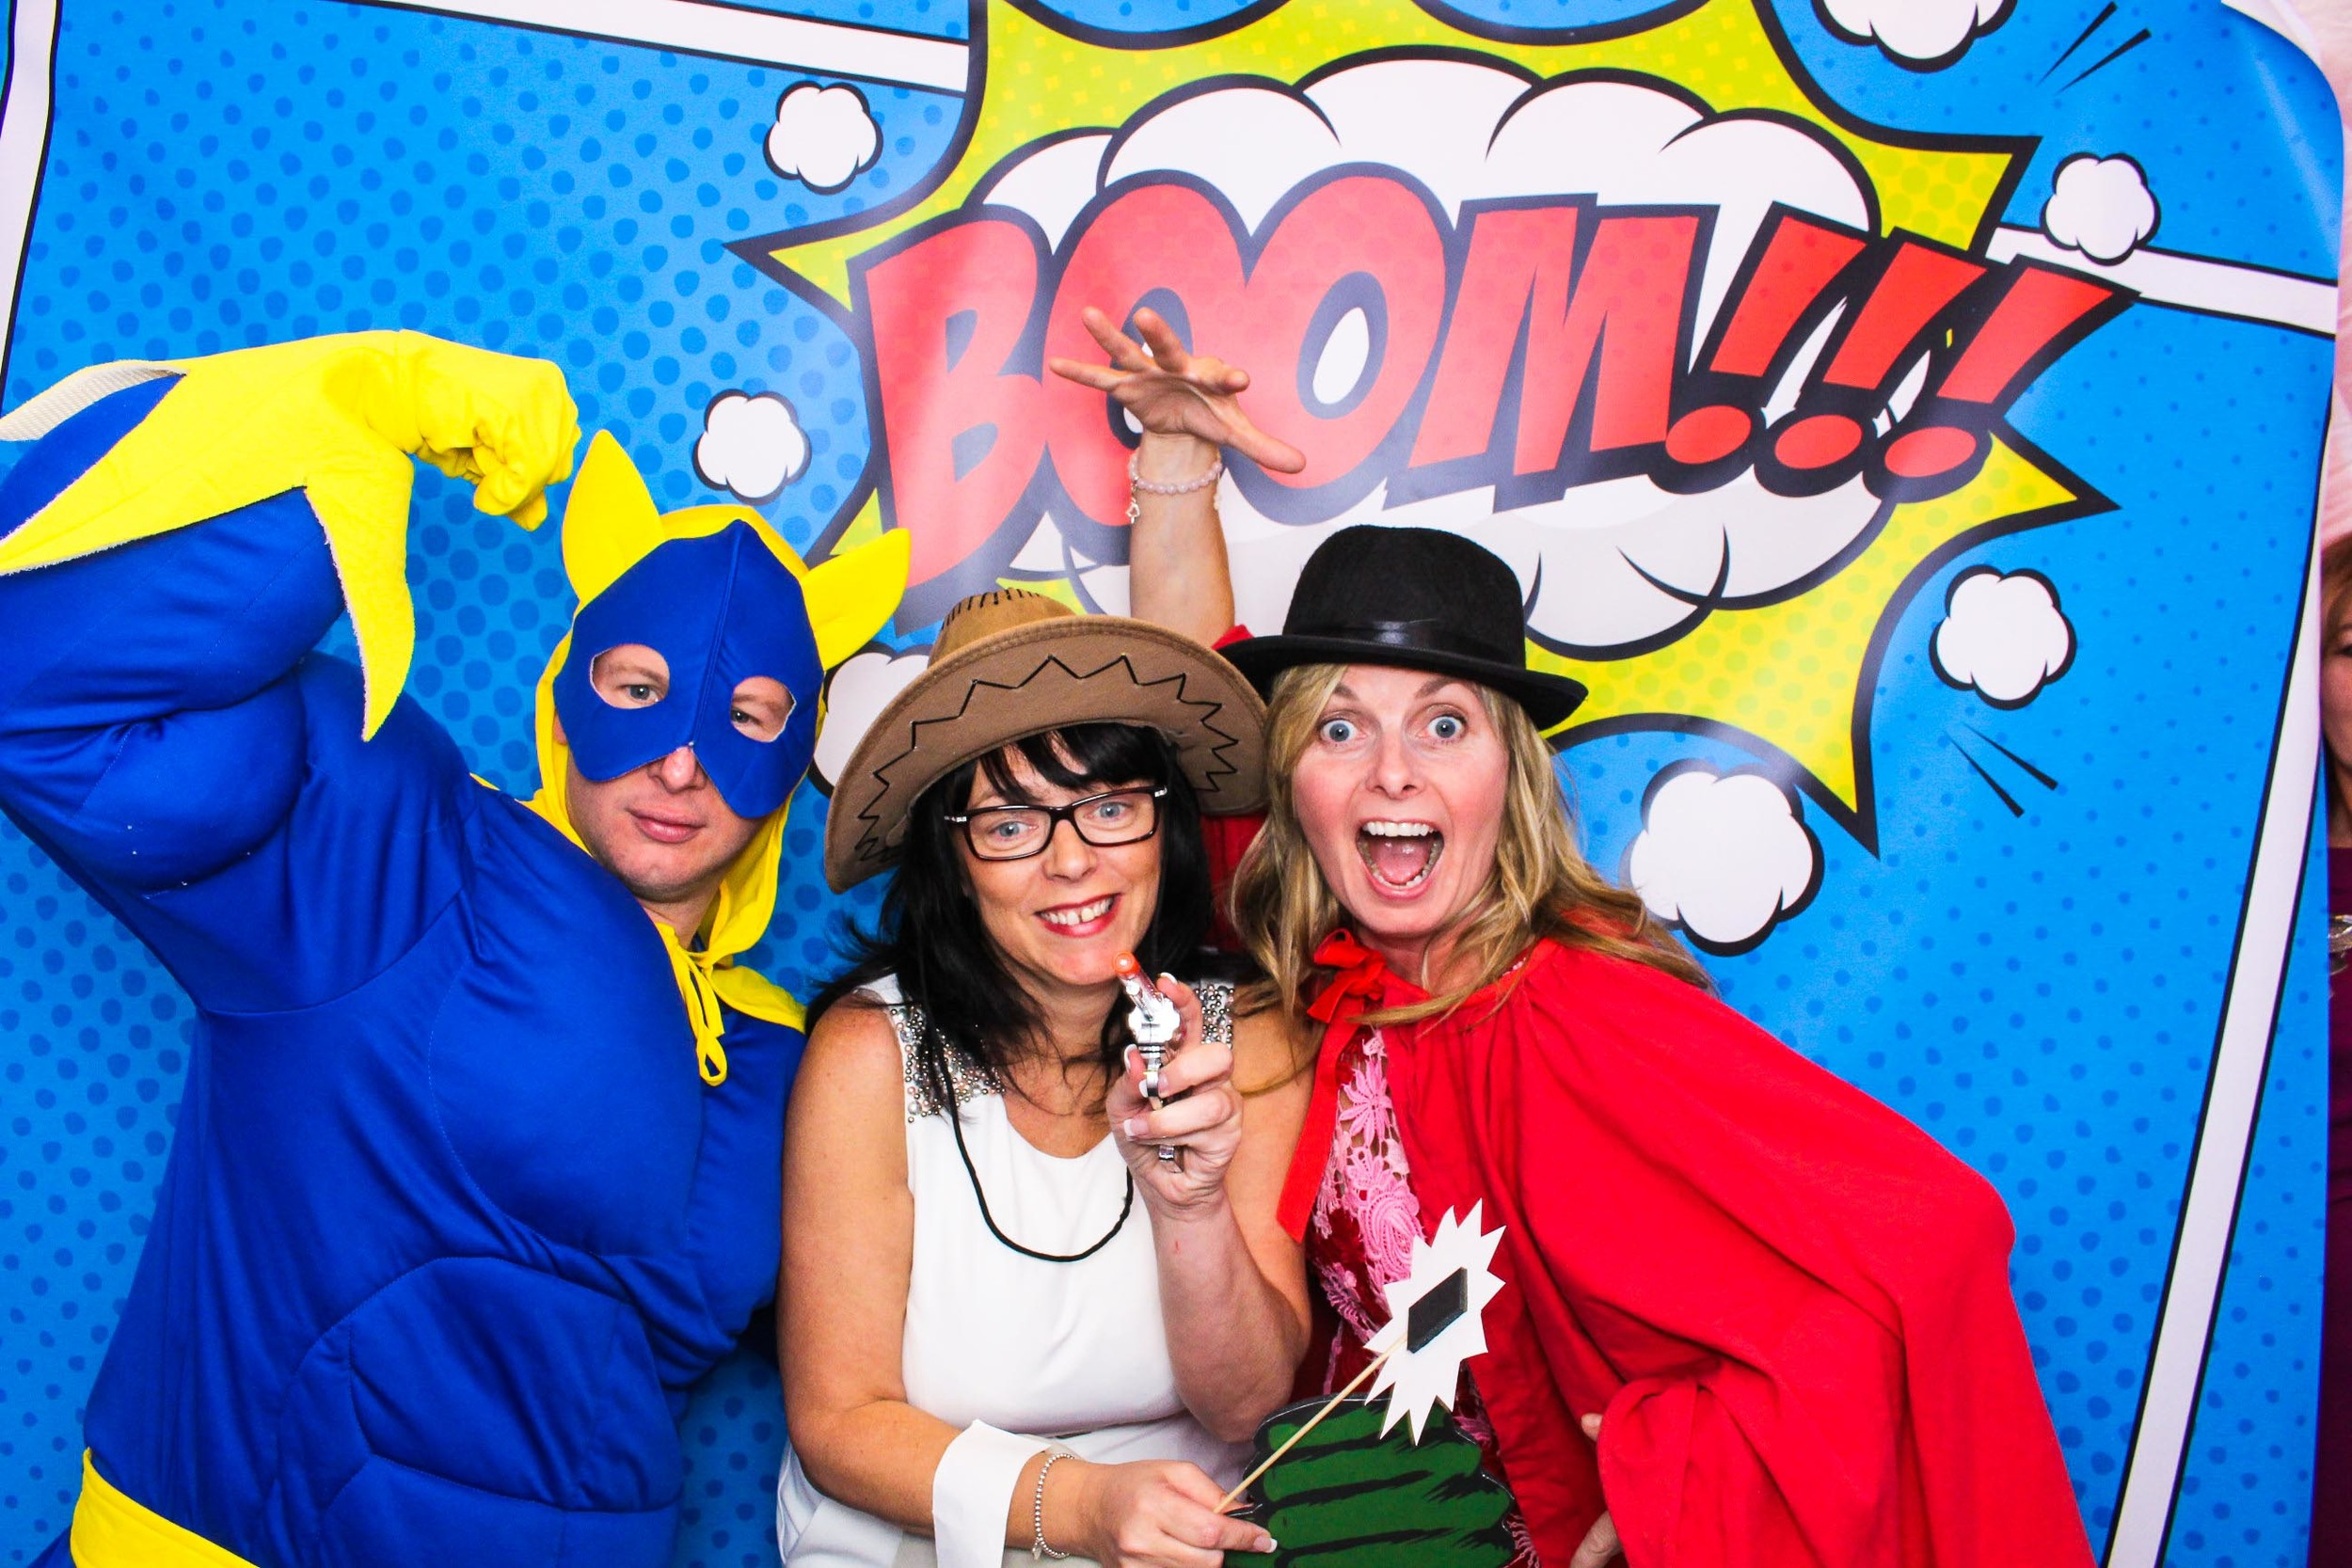 Fotoauto Photo Booth Hire - Shop Direct-48.jpg